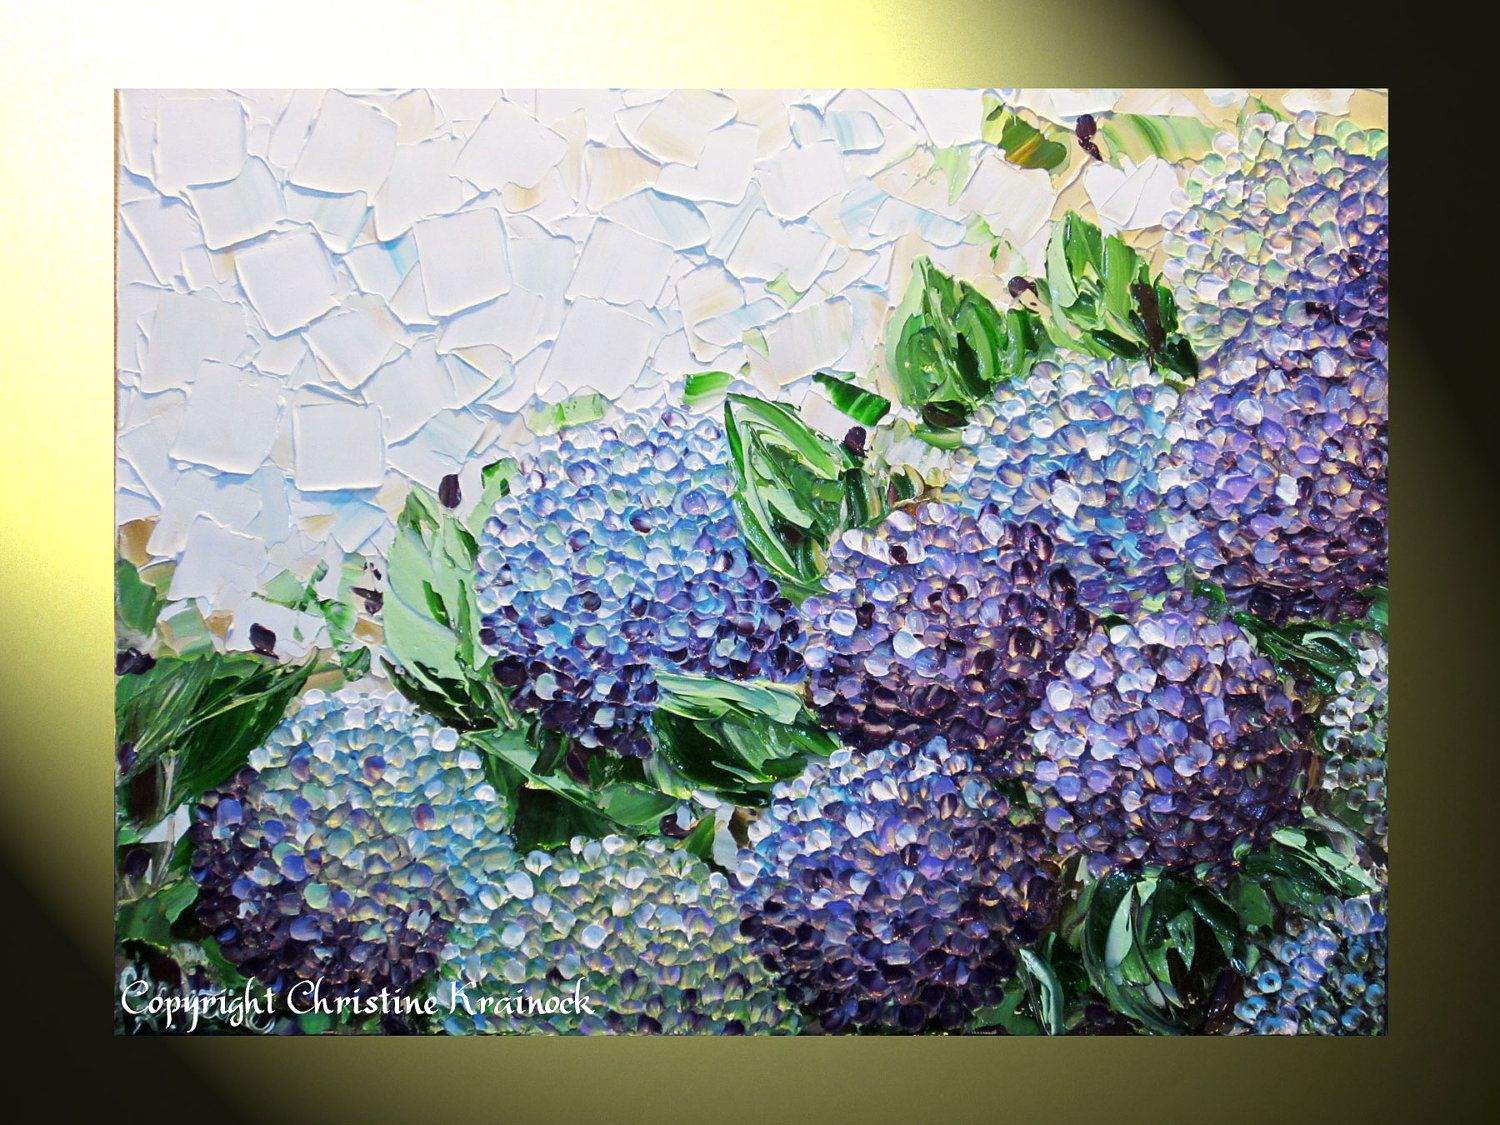 Giclee Print Art Abstract Painting Hydrangea Floral Flowers Modern Palette Knife Lavender White Purple Canva Hydrangea Painting Floral Painting Flower Painting